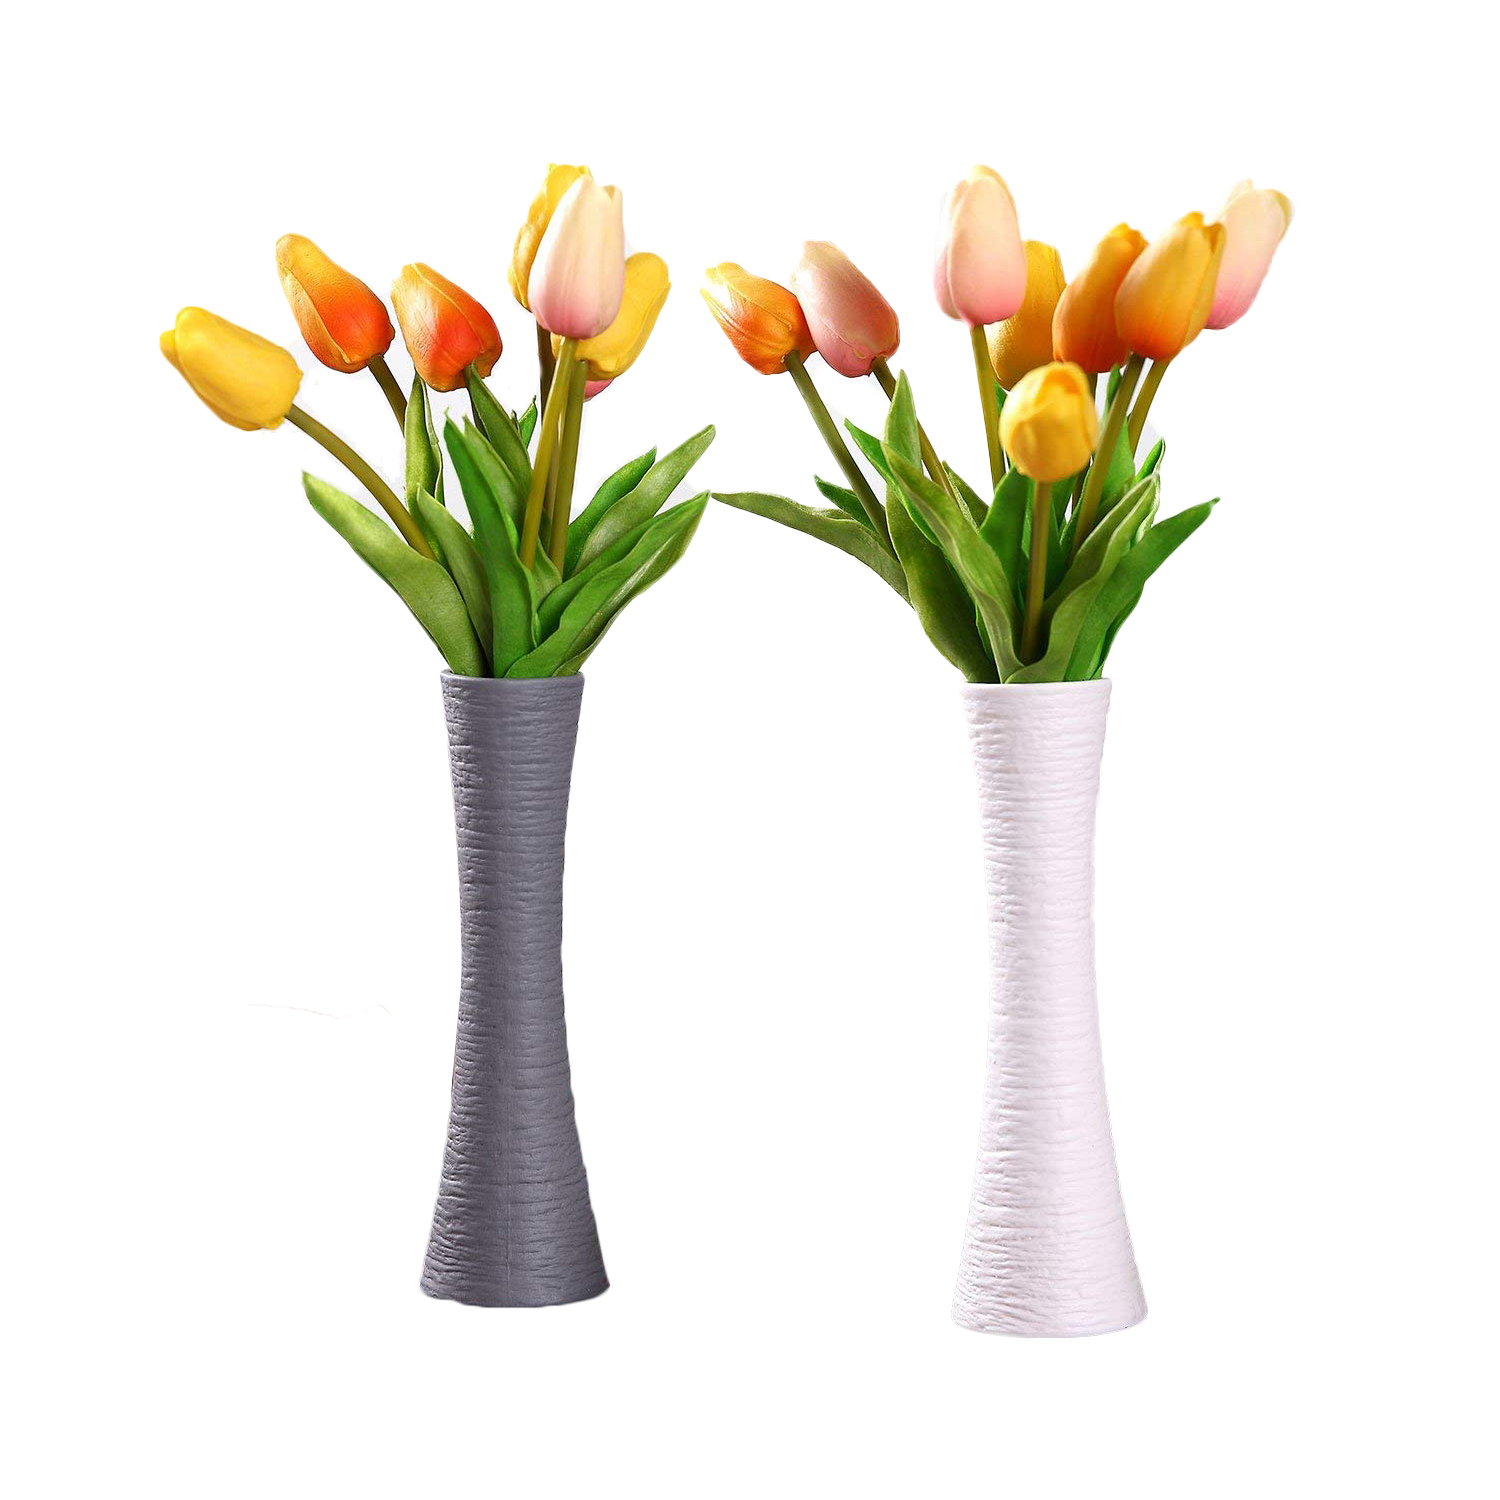 T4u white ceramic vases modern elegant home decorative flower vases t4u white ceramic vases modern elegant home decorative mightylinksfo